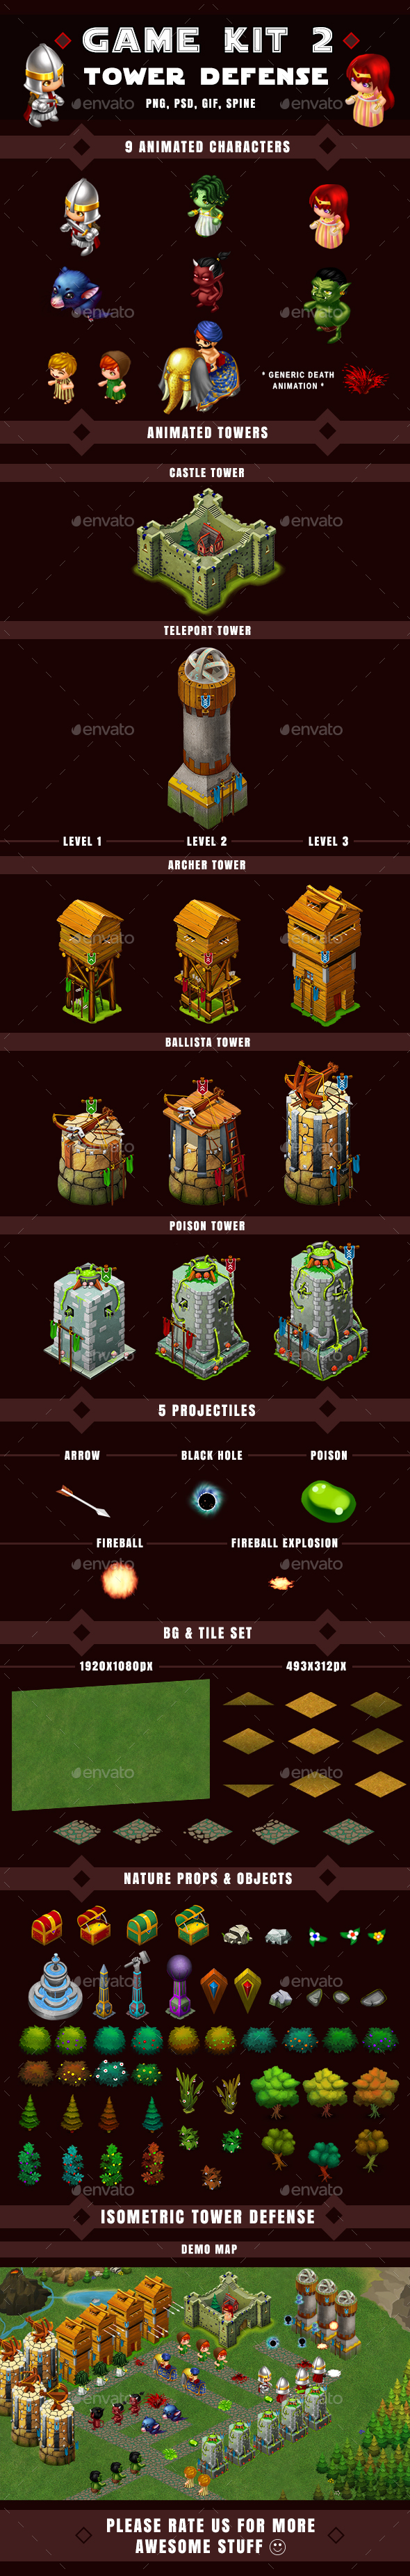 Isometric Tower Defense Game Kit 2 of 3 w character sprites & more — Photoshop PSD #adventure #isometric defense • Available here → https://graphicriver.net/item/isometric-tower-defense-game-kit-2-of-3-w-character-sprites-more/16883875?ref=pxcr